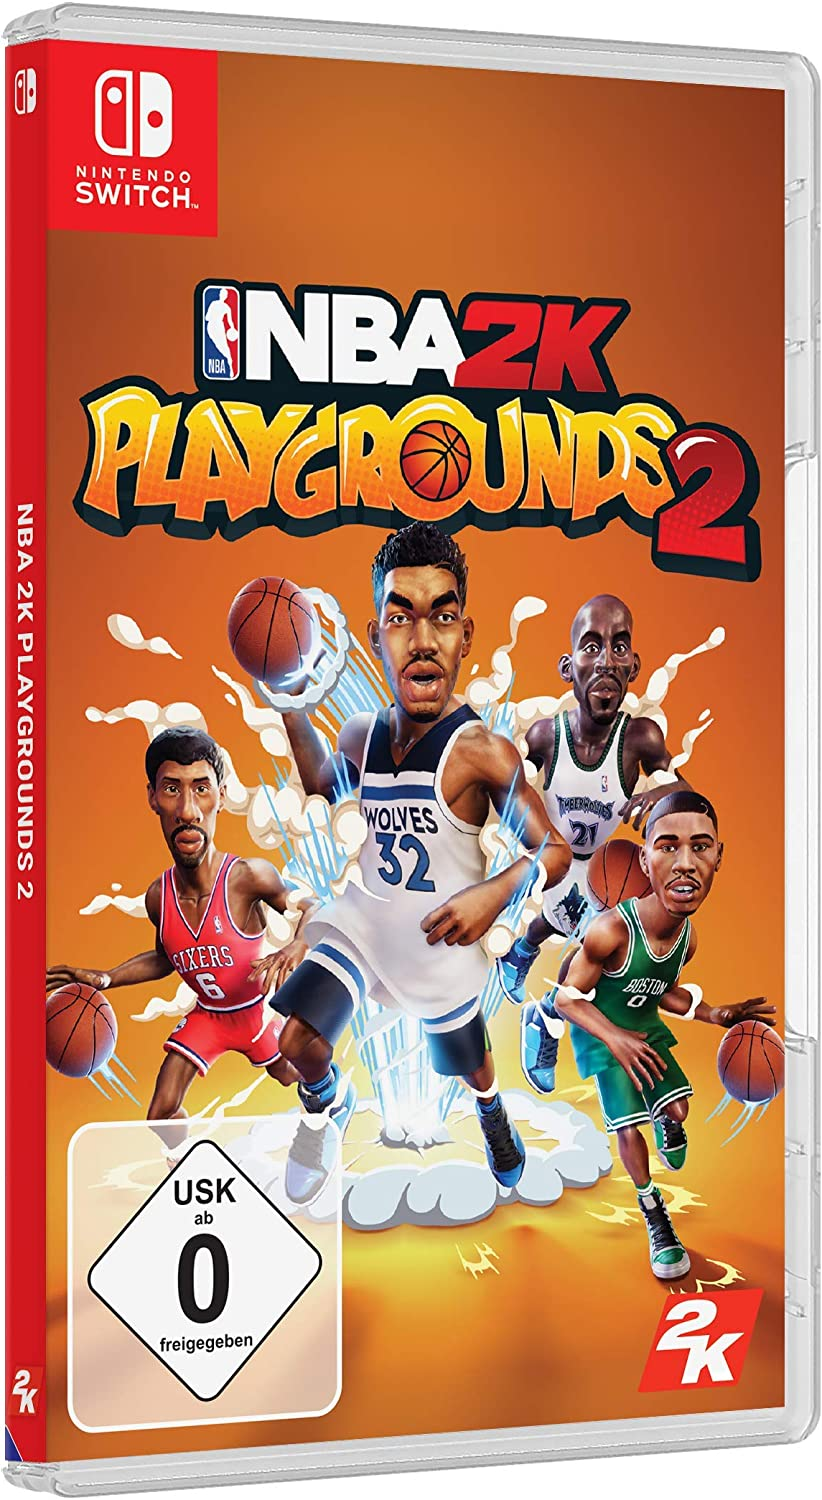 NBA 2K Playgrounds 2 - [USK] - Nintendo Switch [ ] [Importación ...